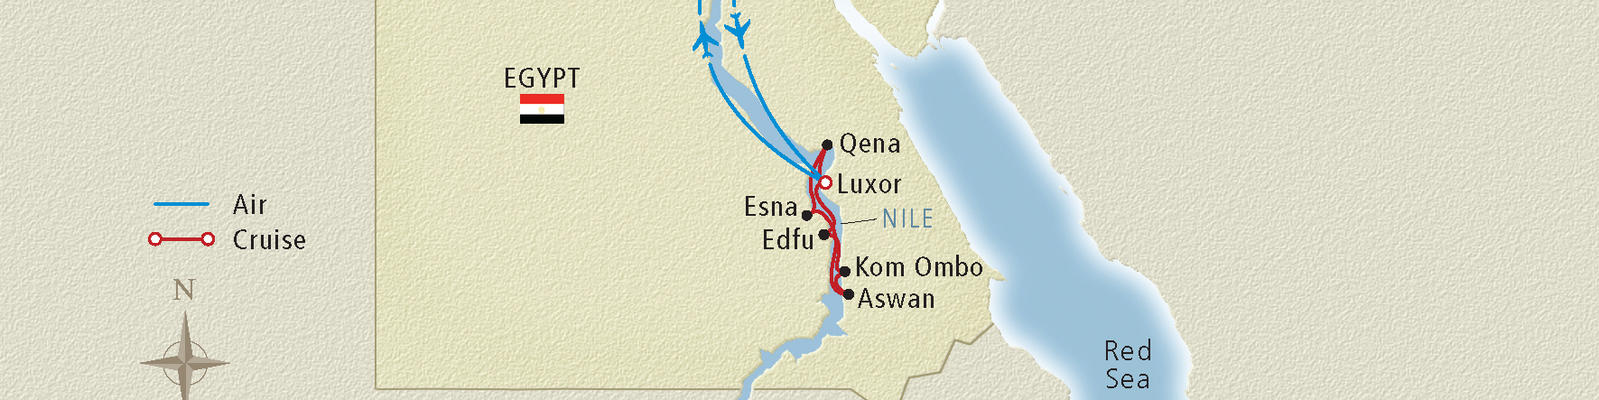 Map of a Nile River cruise route (Image: Viking River Cruises)